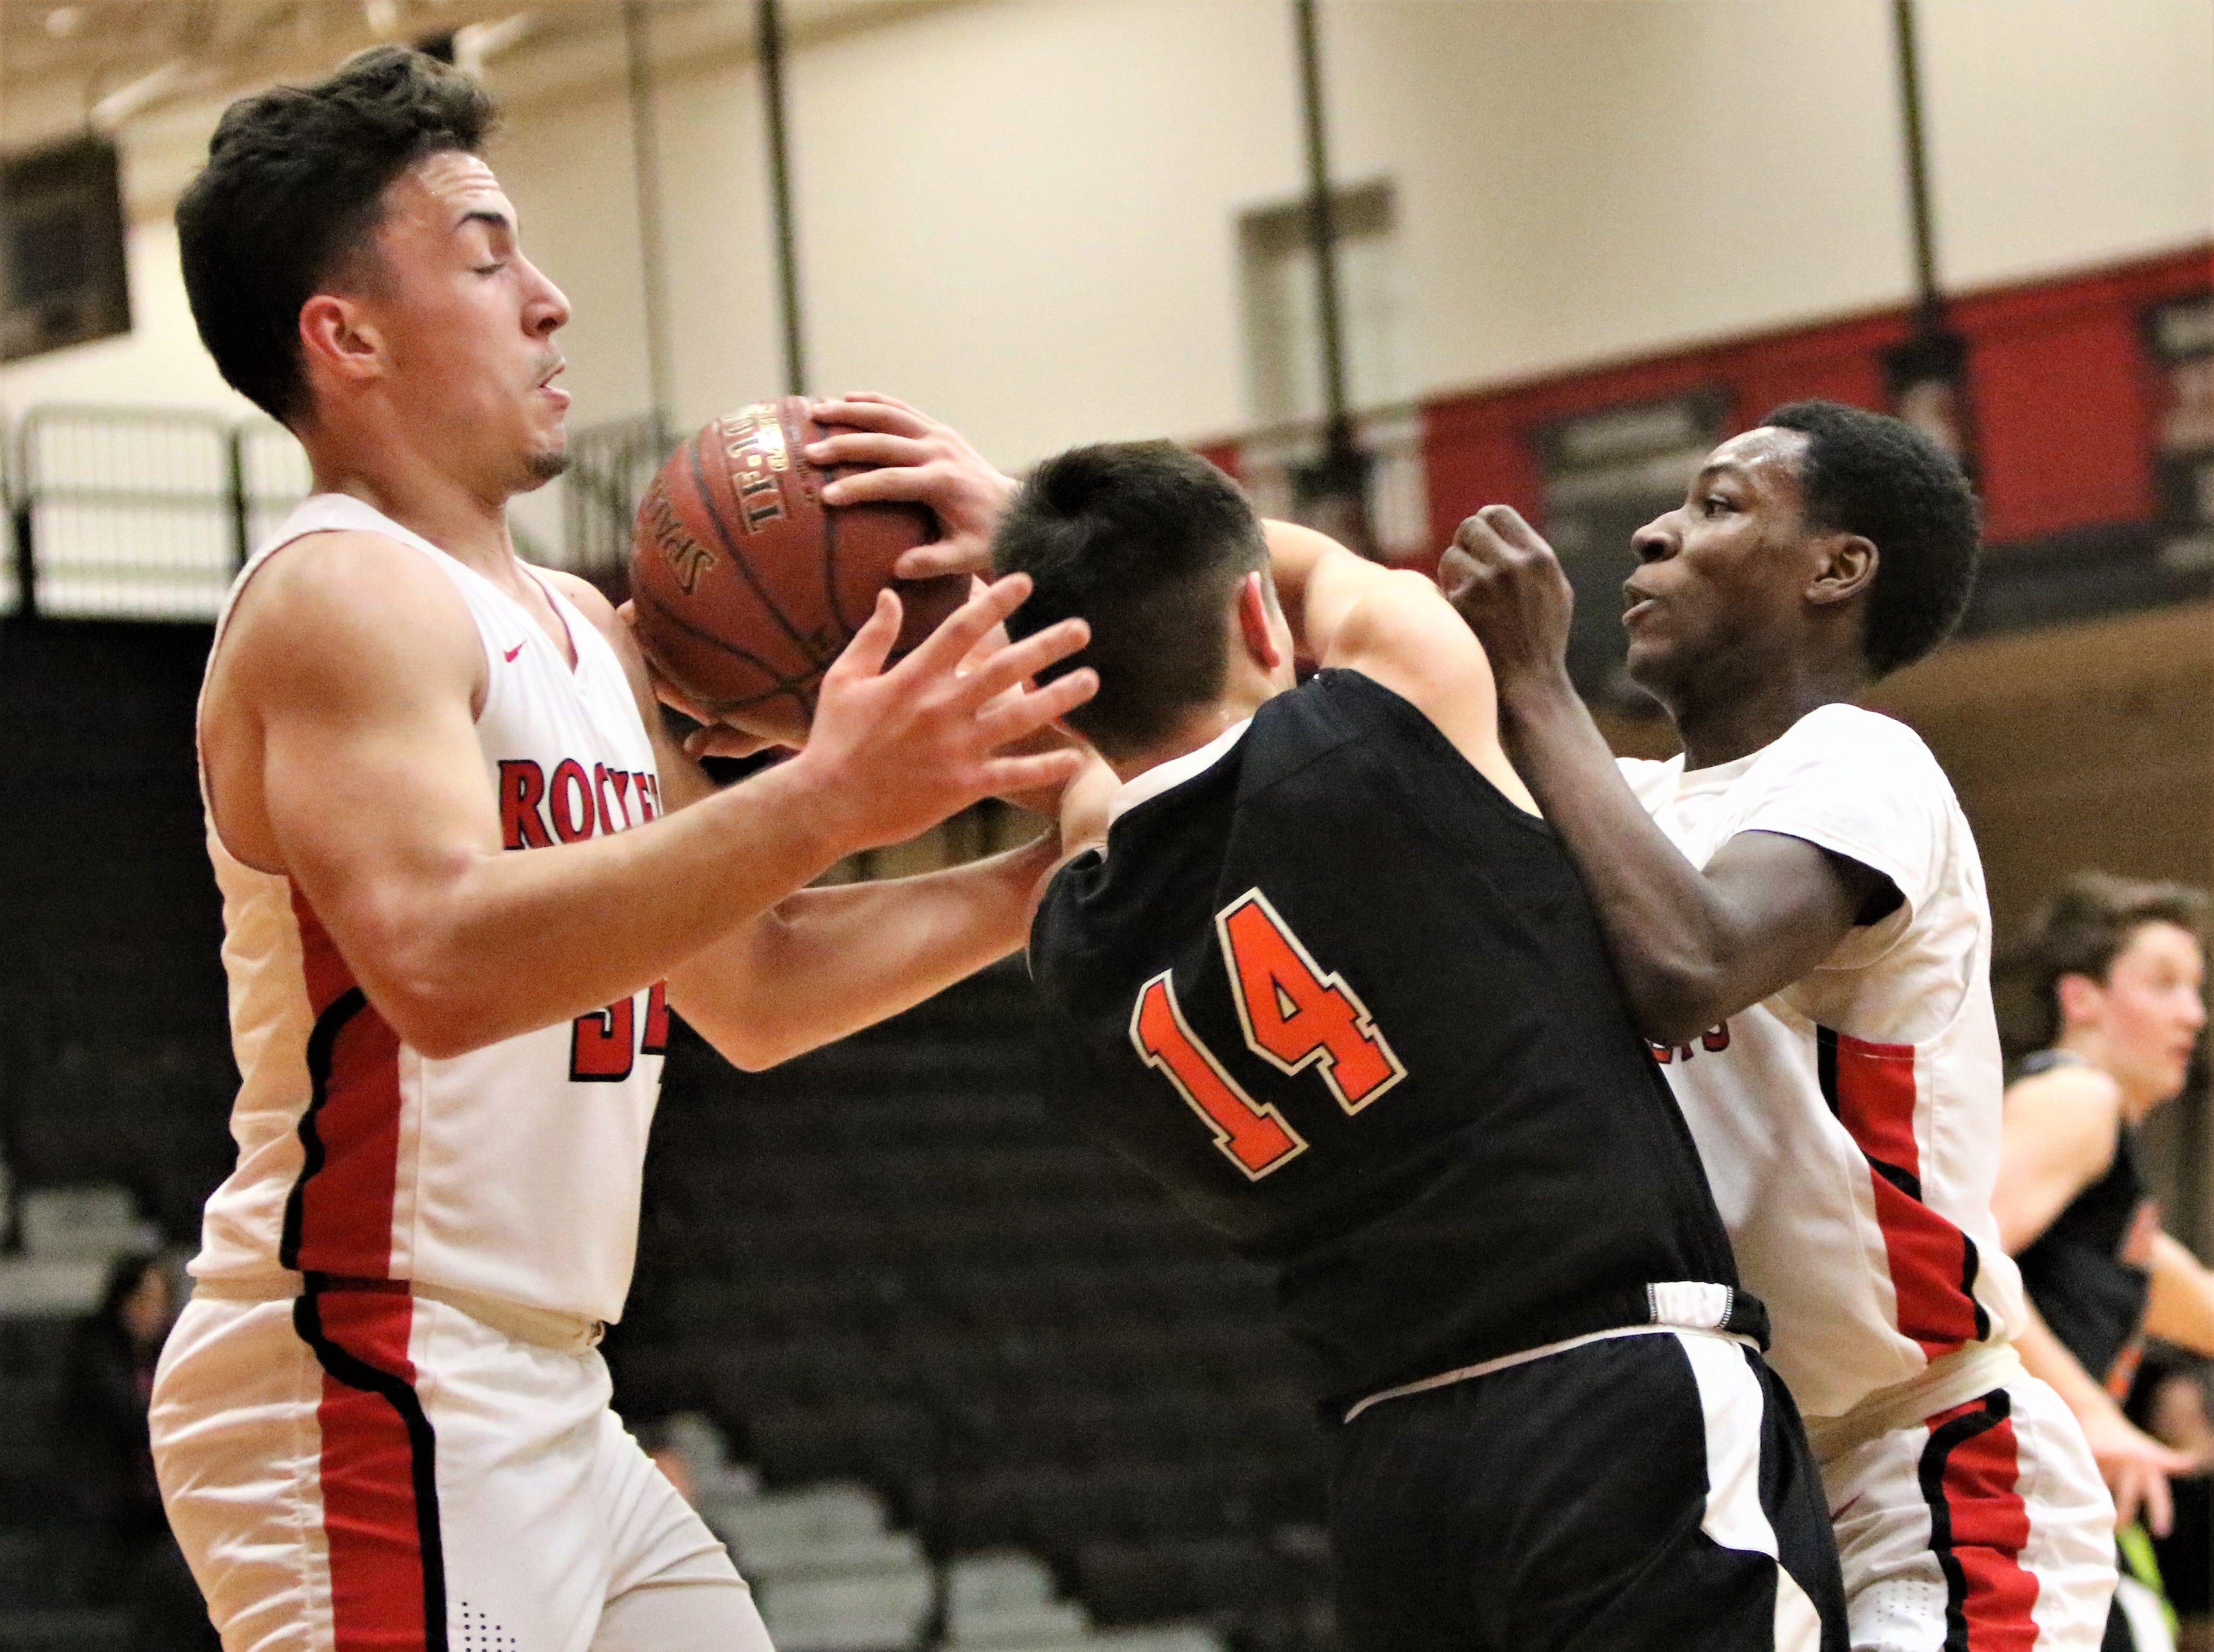 Grafton guard Tyler Tsui (14) fights through a double team from South Milwaukee after pulling down a rebound during a game on Jan. 22, 2019.